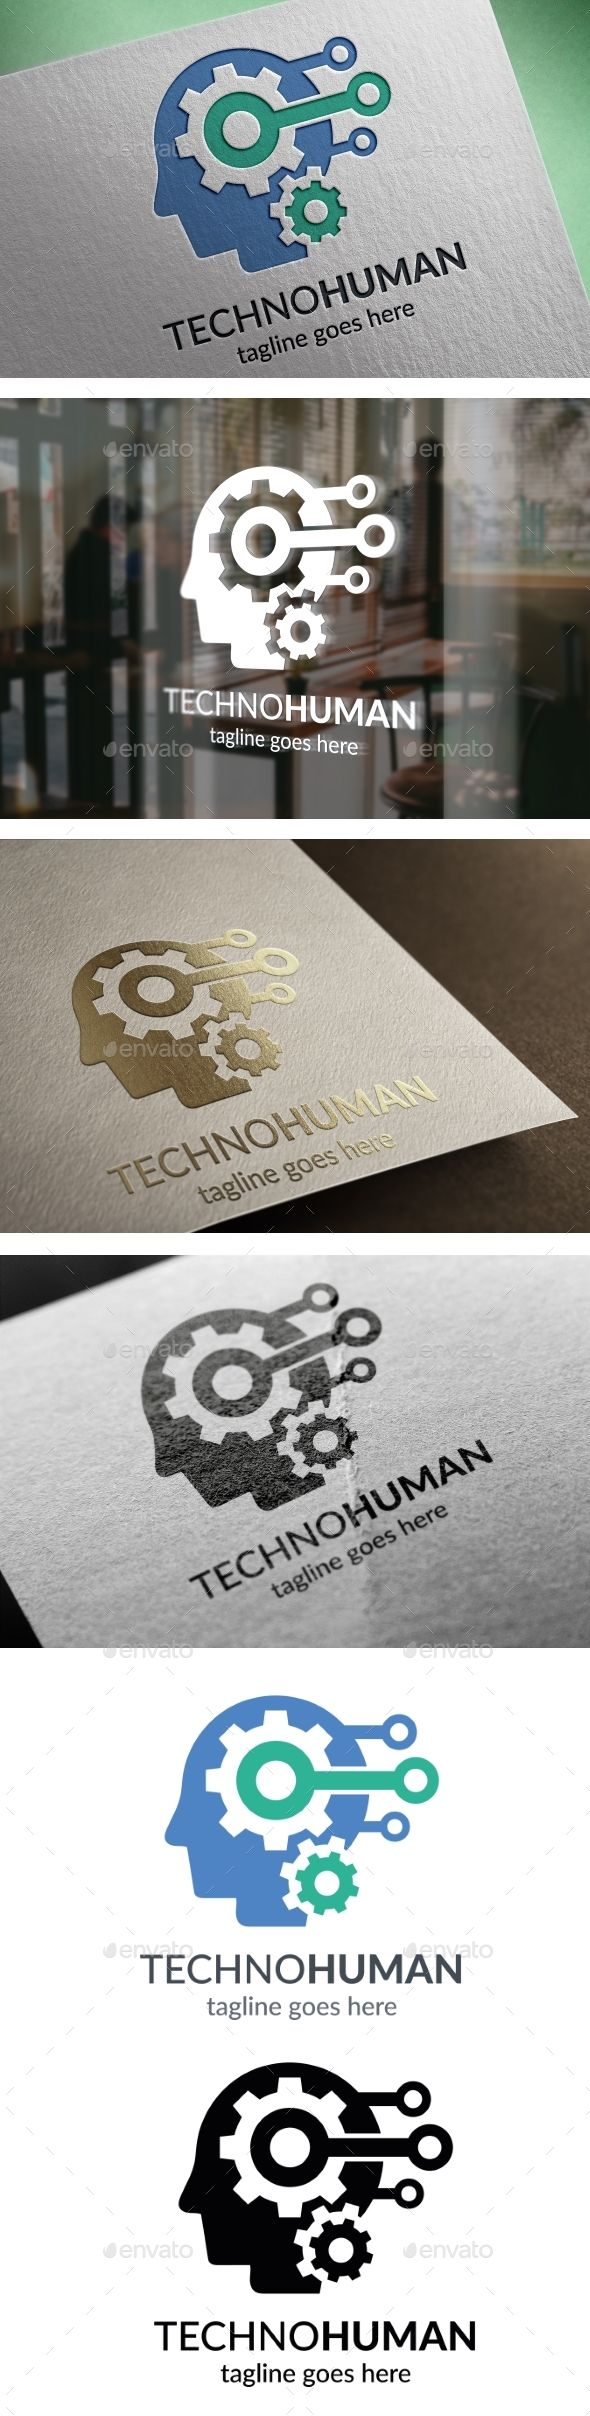 Techno Human #Logo - #Humans Logo #Templates Download here: https://graphicriver.net/item/techno-human-logo/19239549?ref=alena994